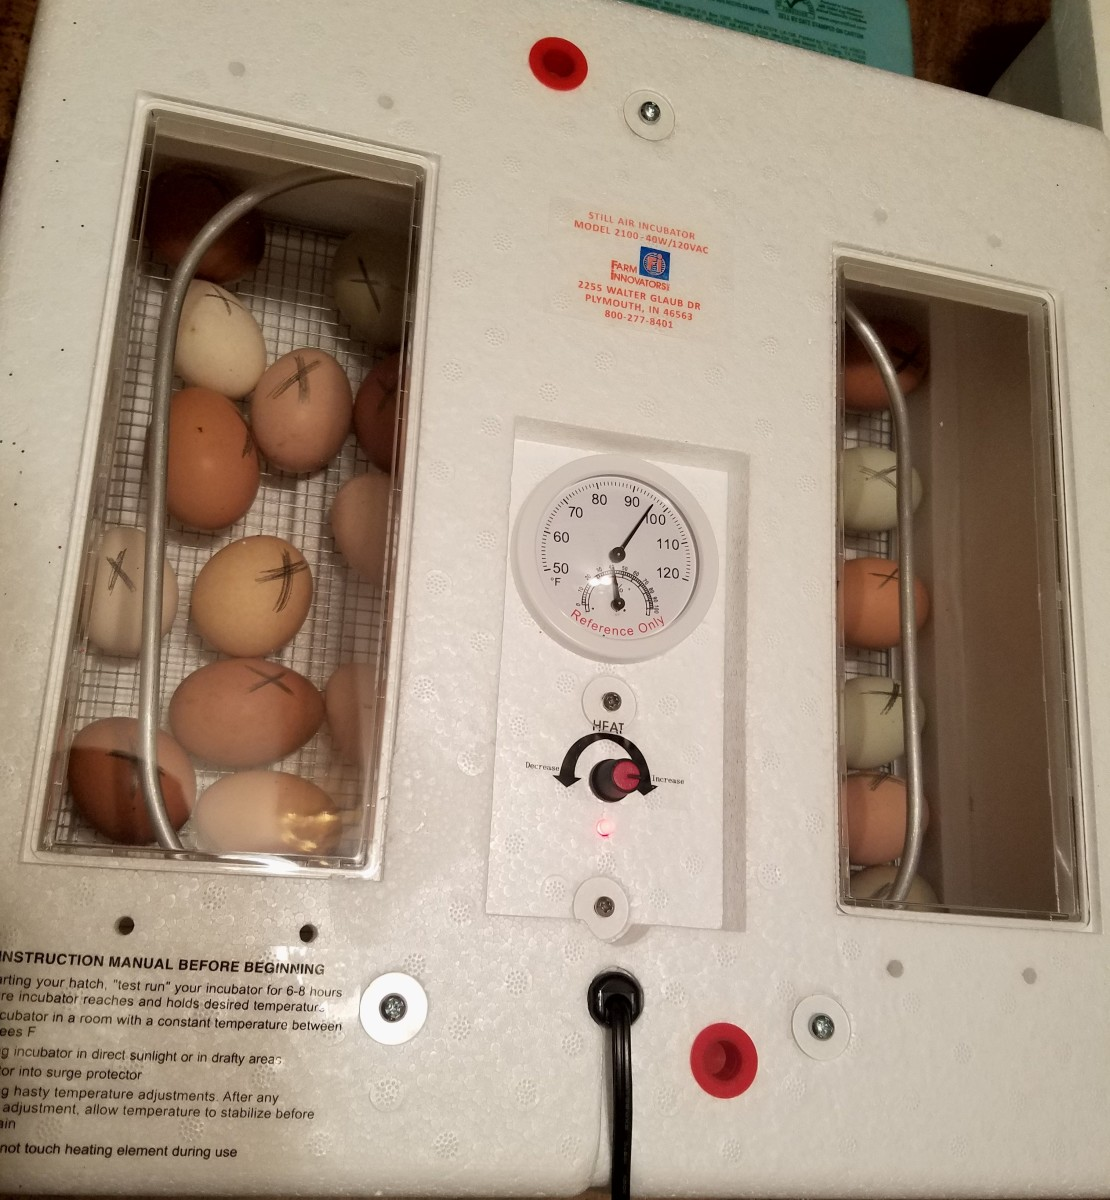 Eggs cleaned, marked and placed in the incubator